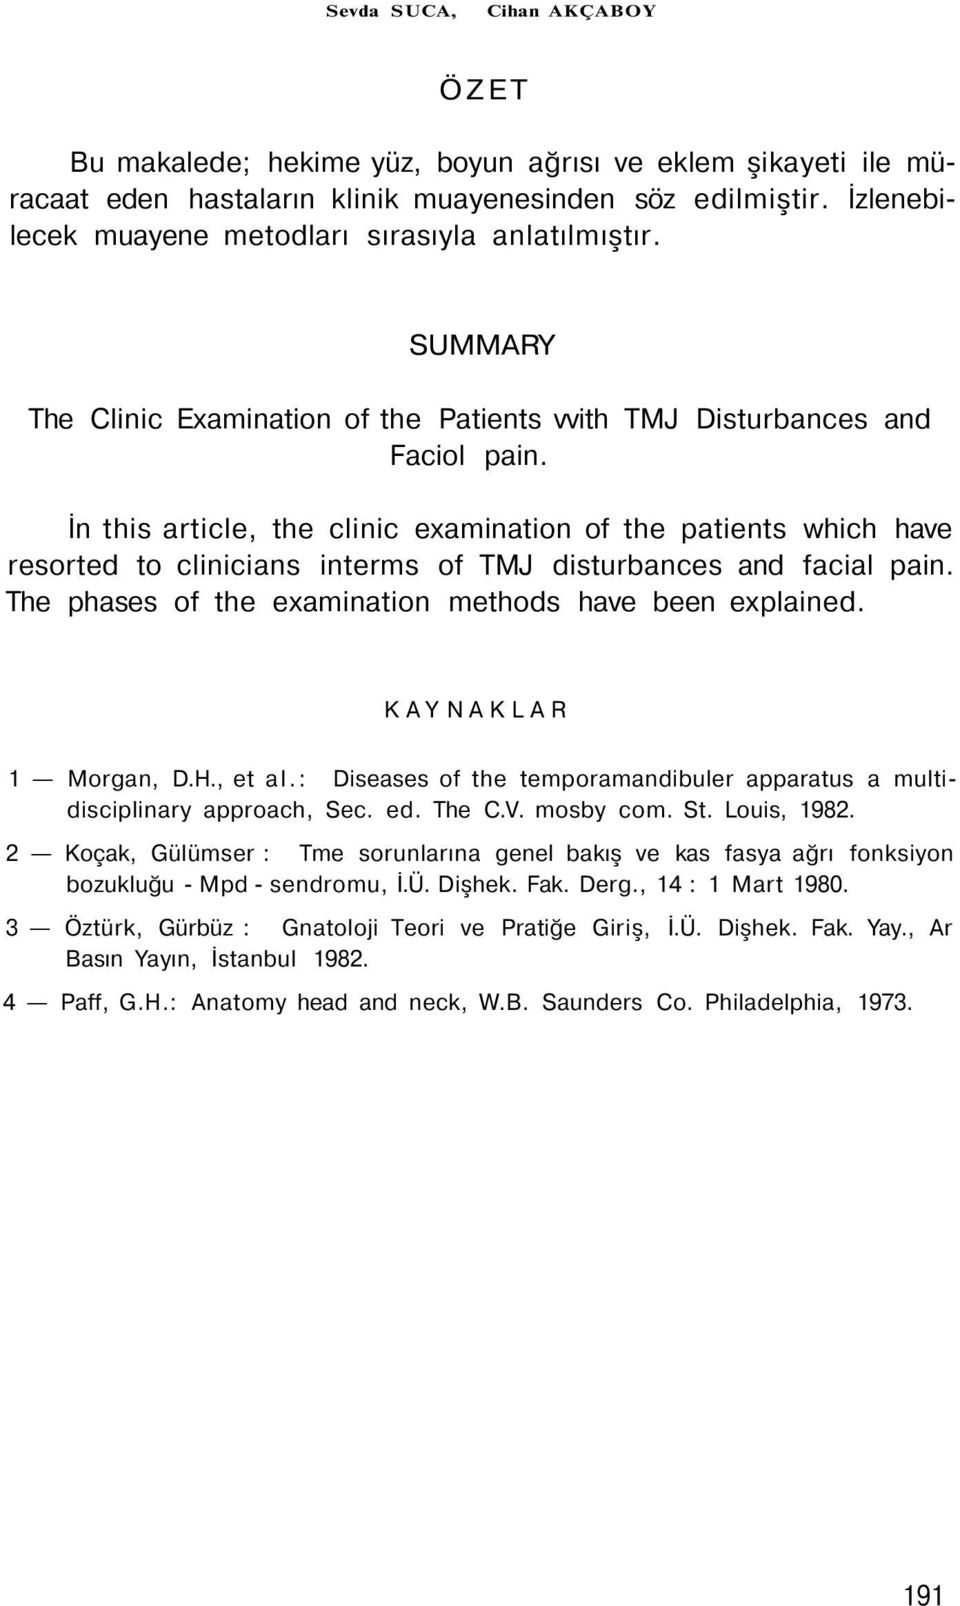 İn this article, the clinic examination of the patients which have resorted to clinicians interms of TMJ disturbances and facial pain. The phases of the examination methods have been explained.